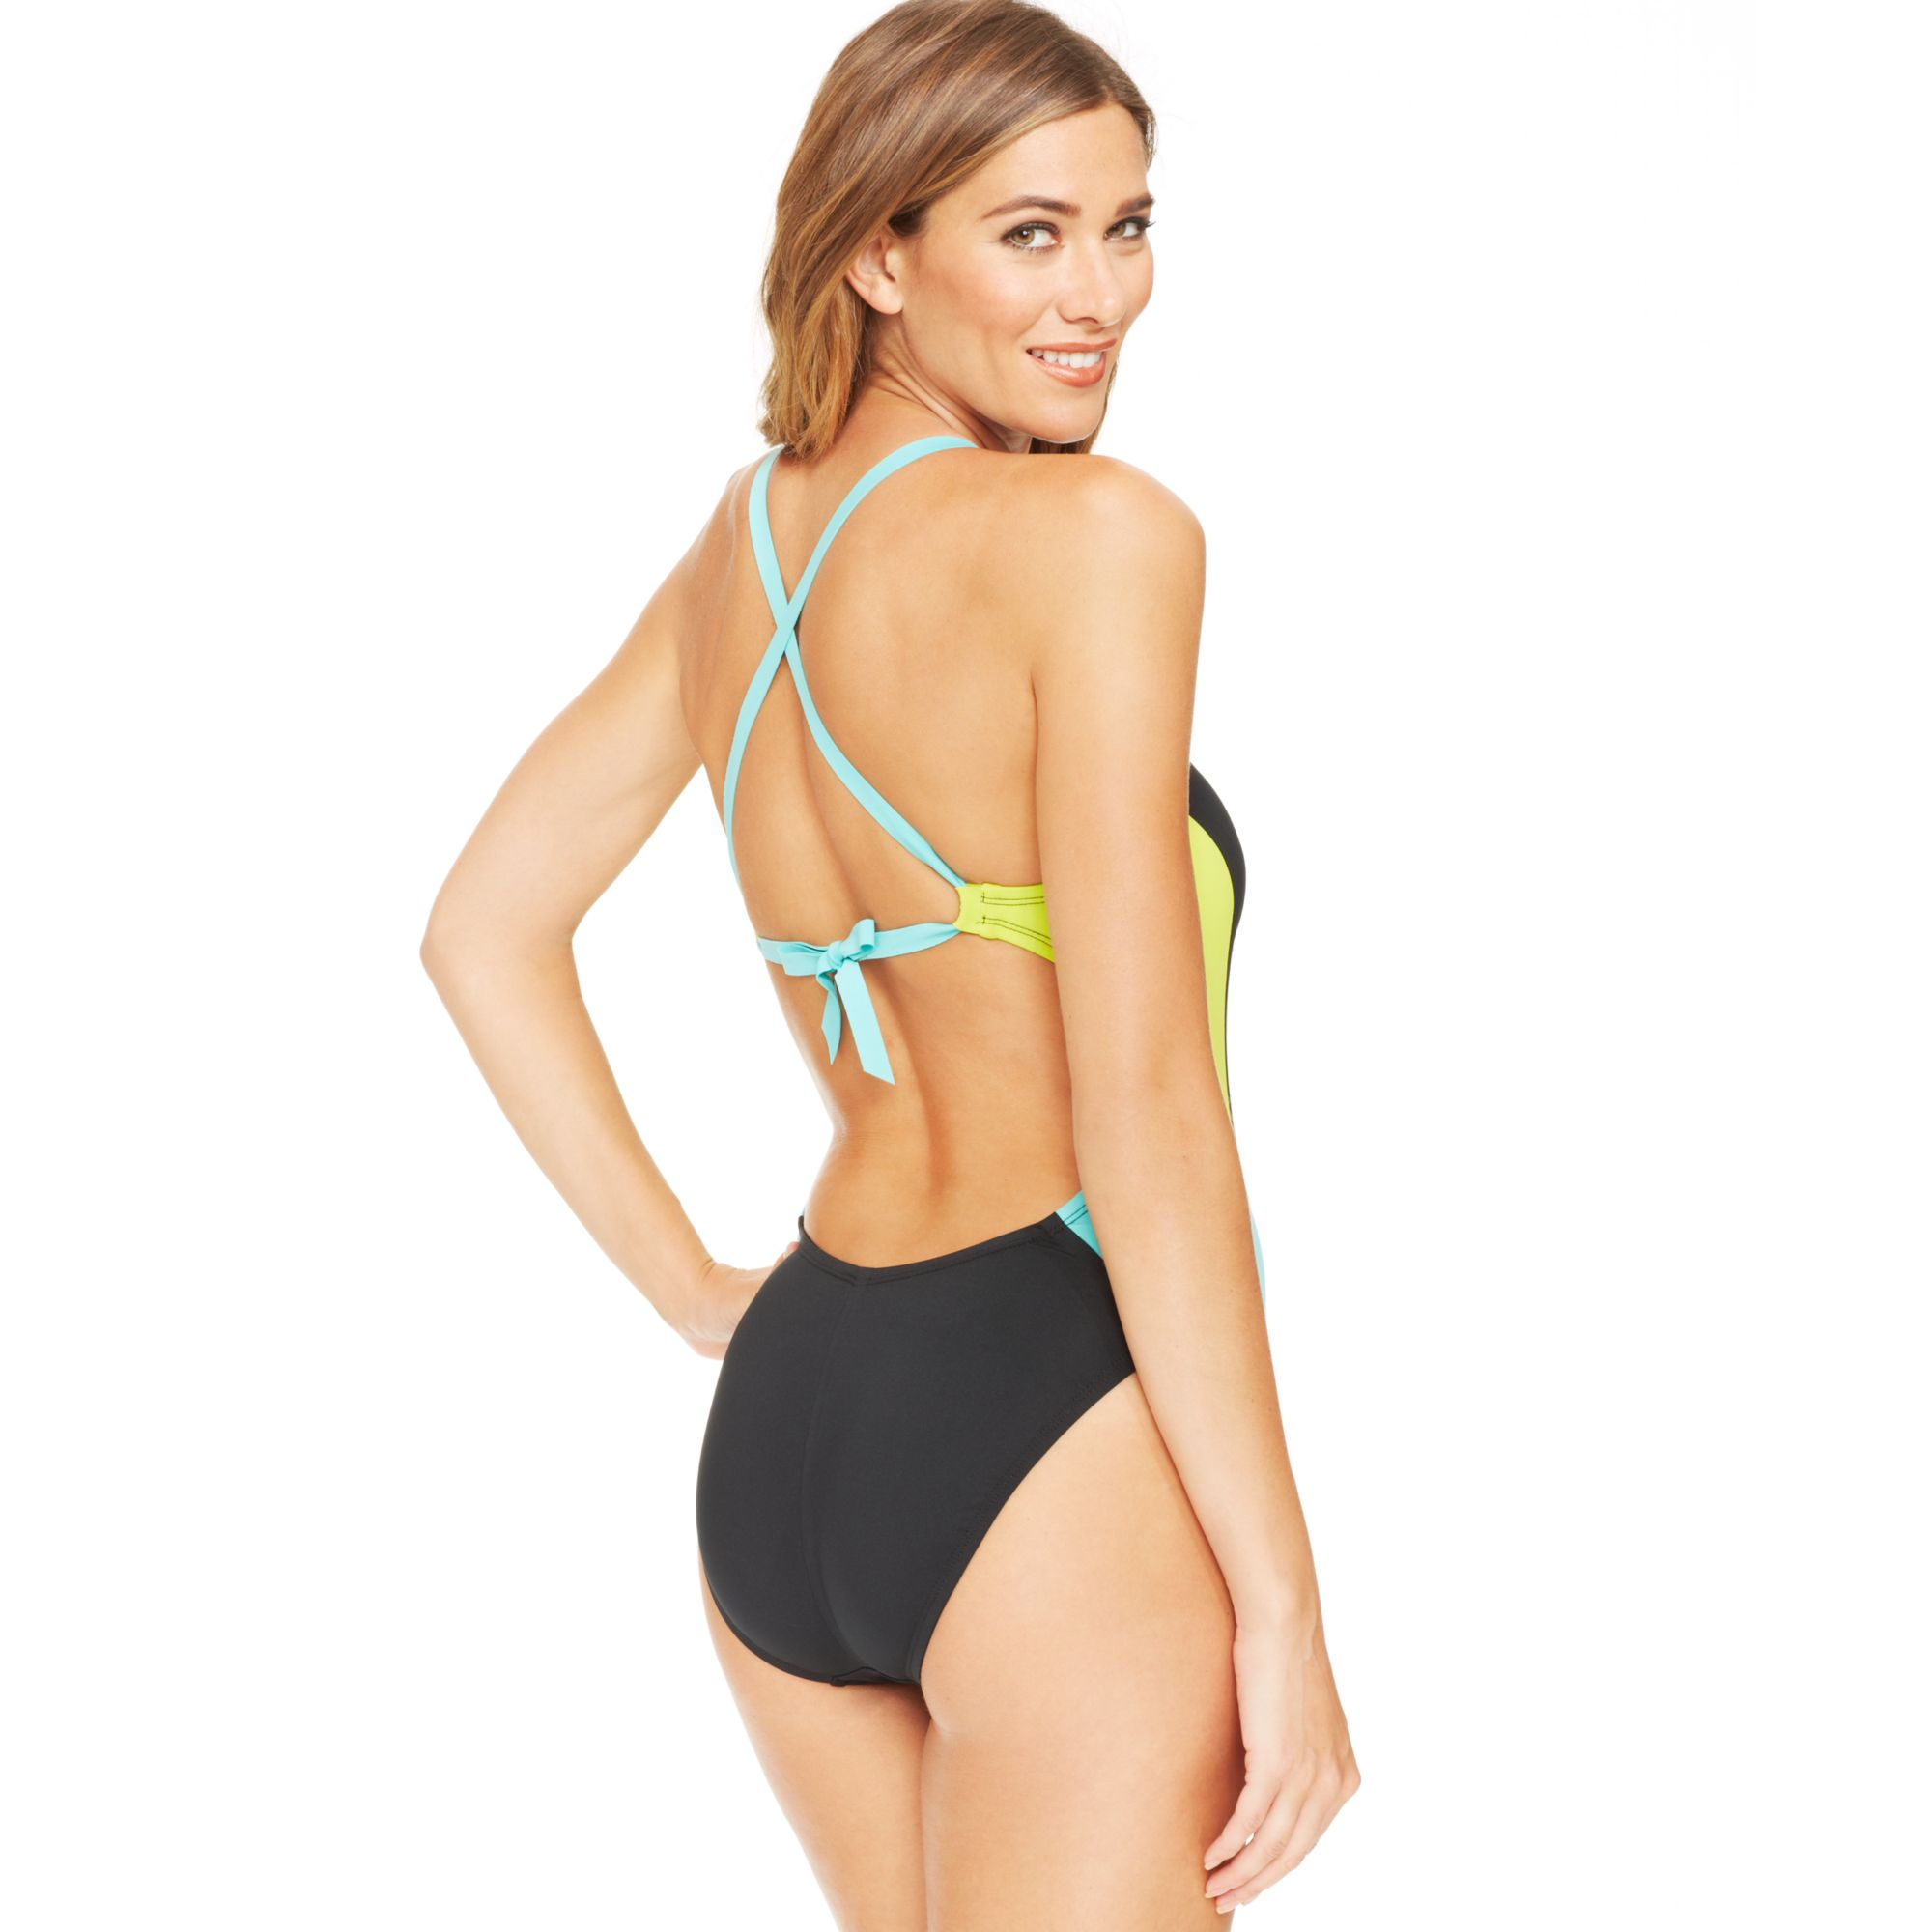 Lyst - Nike Bondi Colorblock Onepiece Swimsuit in Black 9a3378a5af